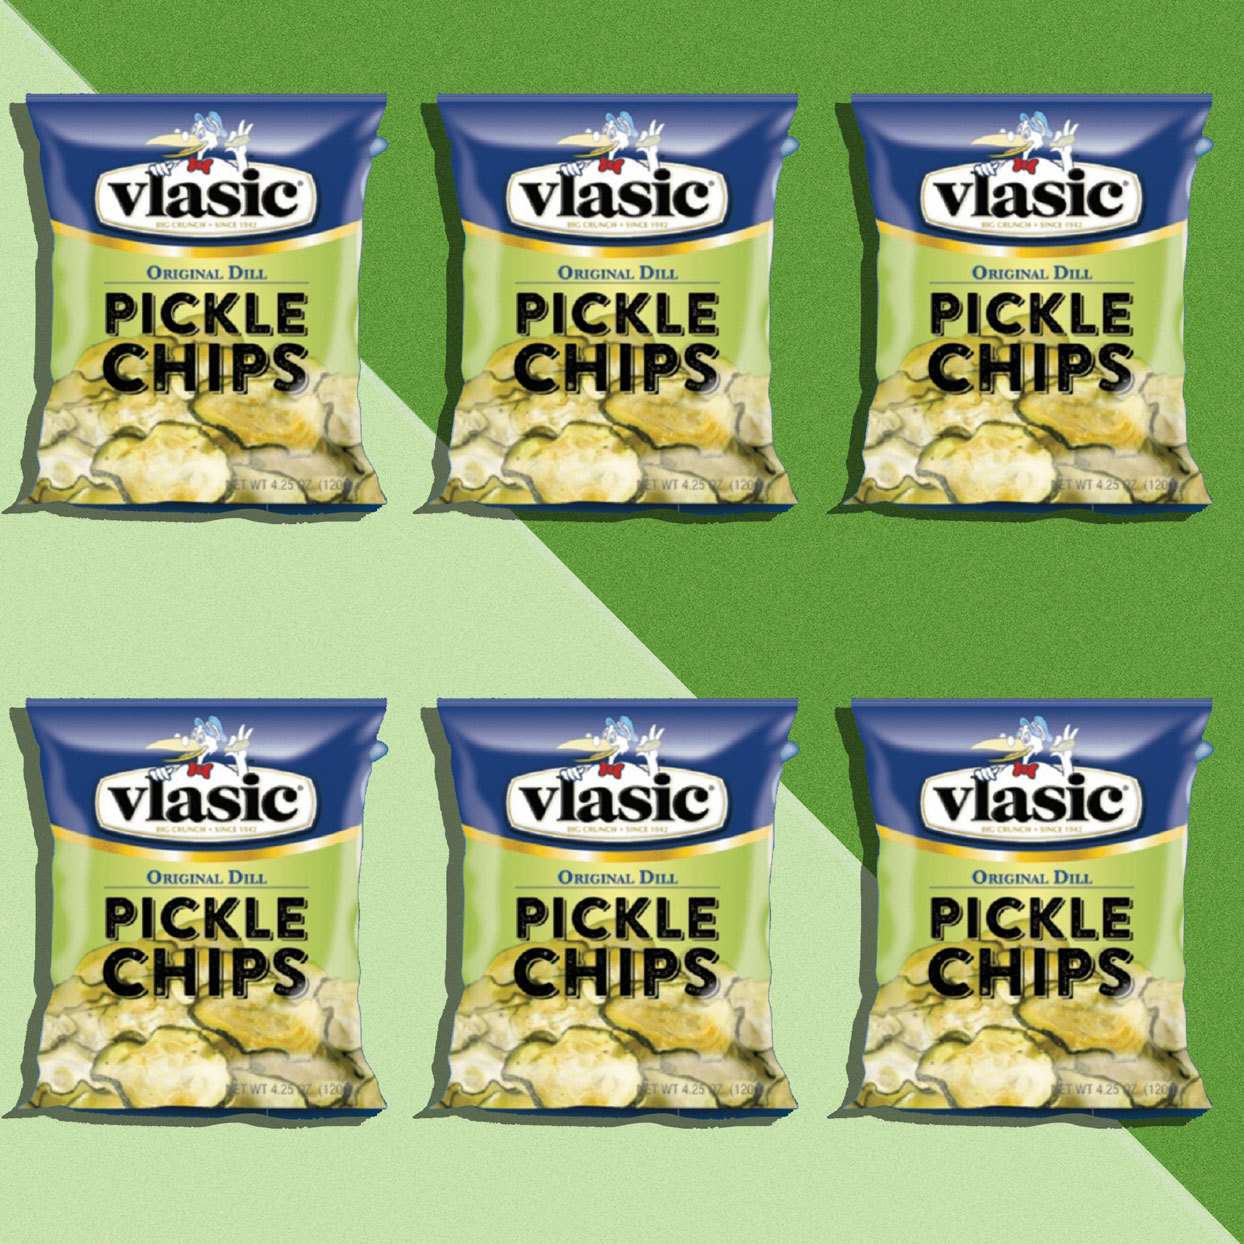 Dill Pickle Chips Are About to Be Our New Favorite Low-Carb Snack